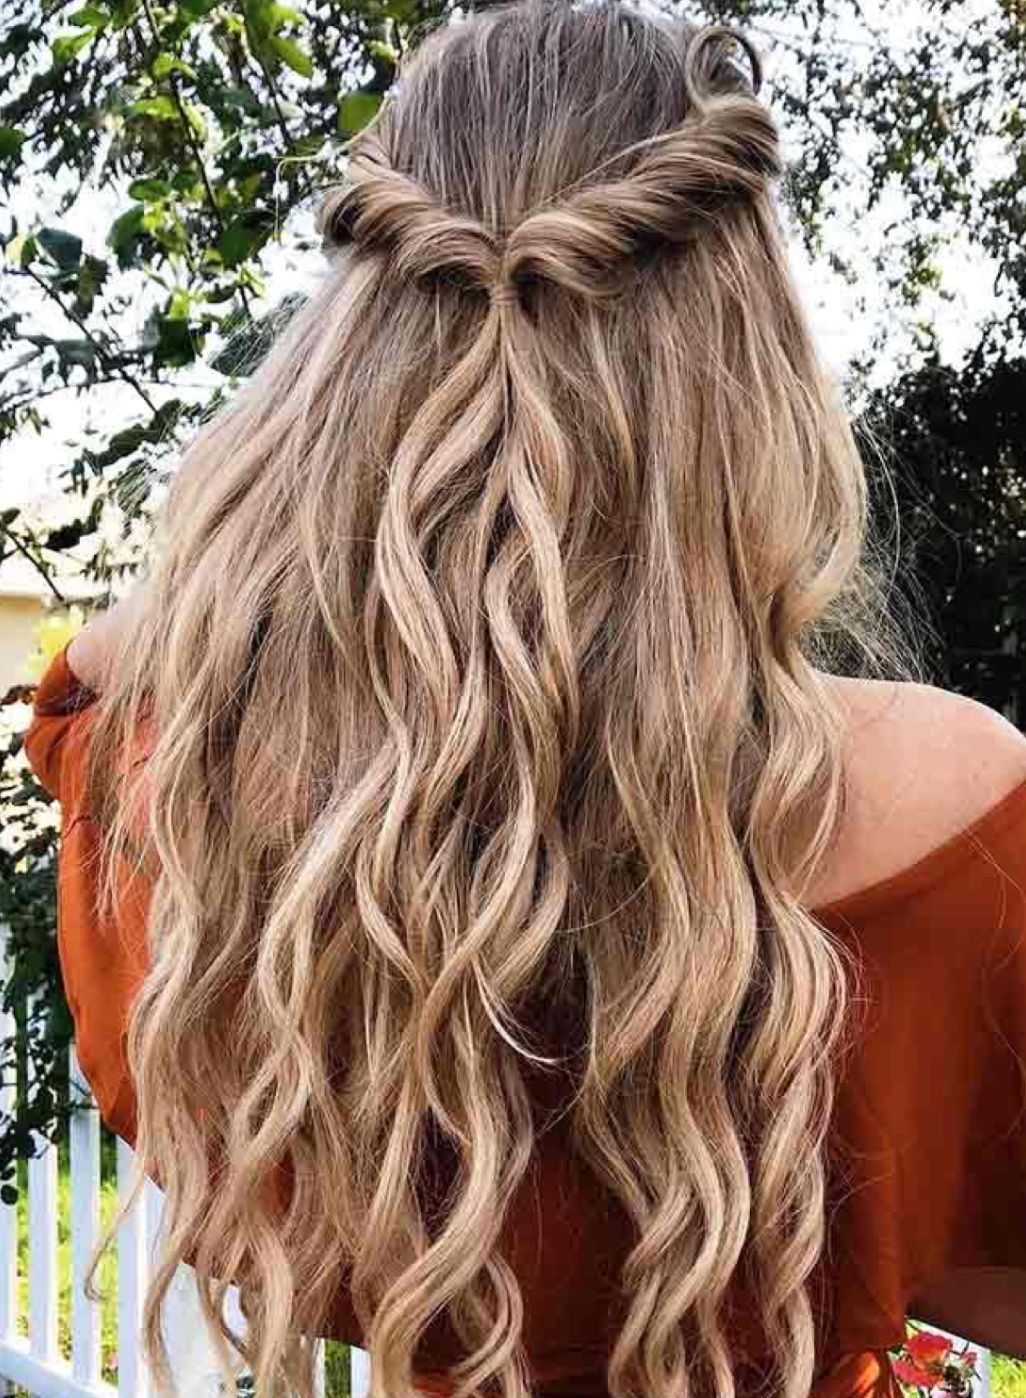 Pin By Chandler Cleveland On Hairstyles Long Hair Styles Hair Styles Spring Hairstyles